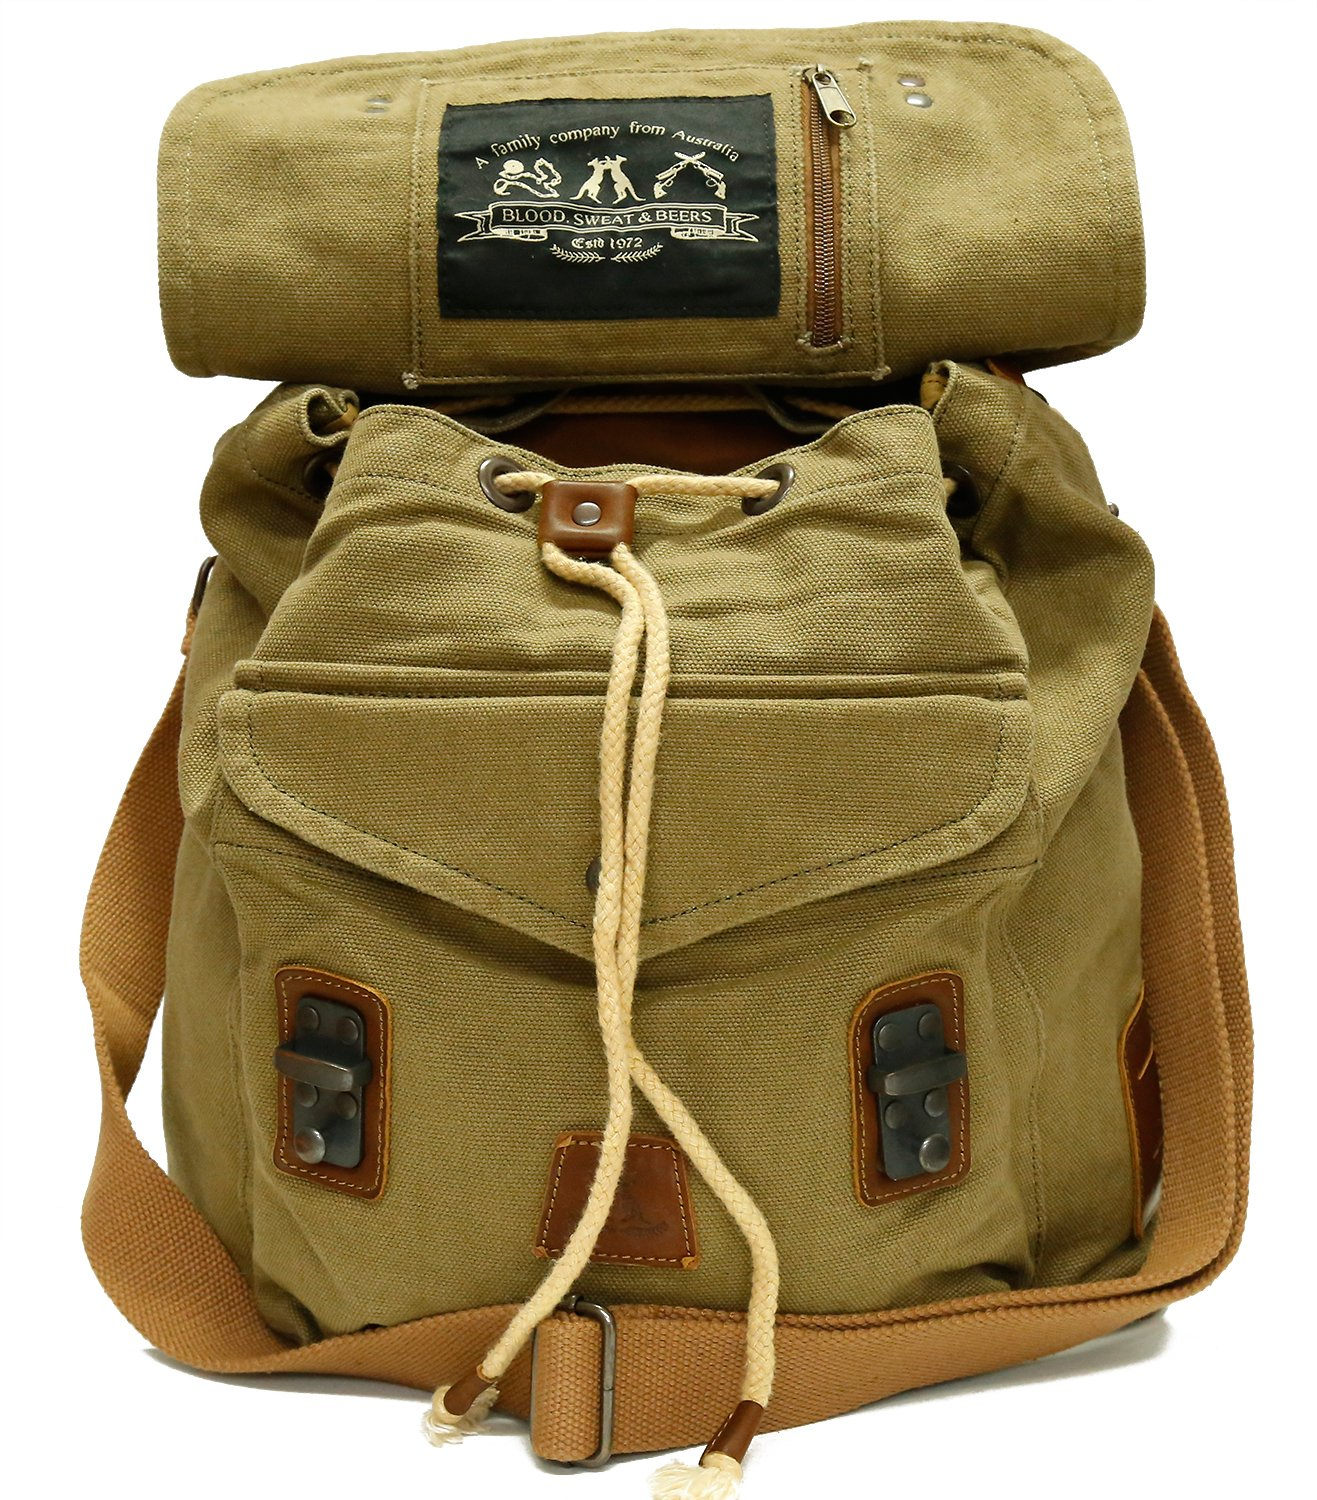 Shoulder- Laptop Bag Satchel from Whillas & Gunn